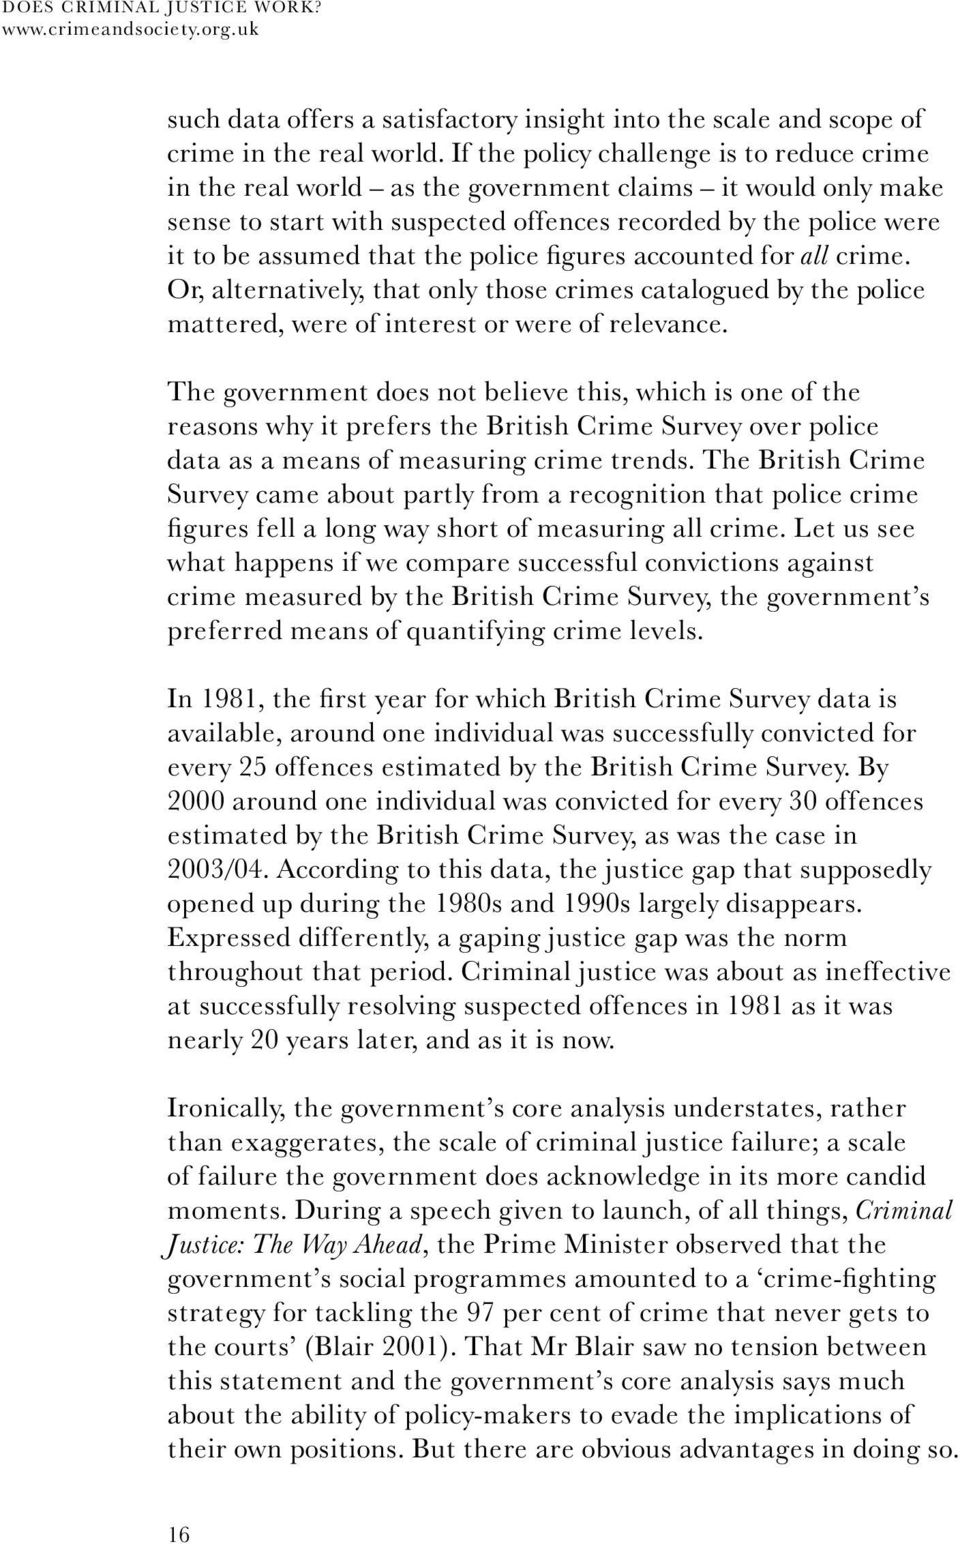 police figures accounted for all crime. Or, alternatively, that only those crimes catalogued by the police mattered, were of interest or were of relevance.